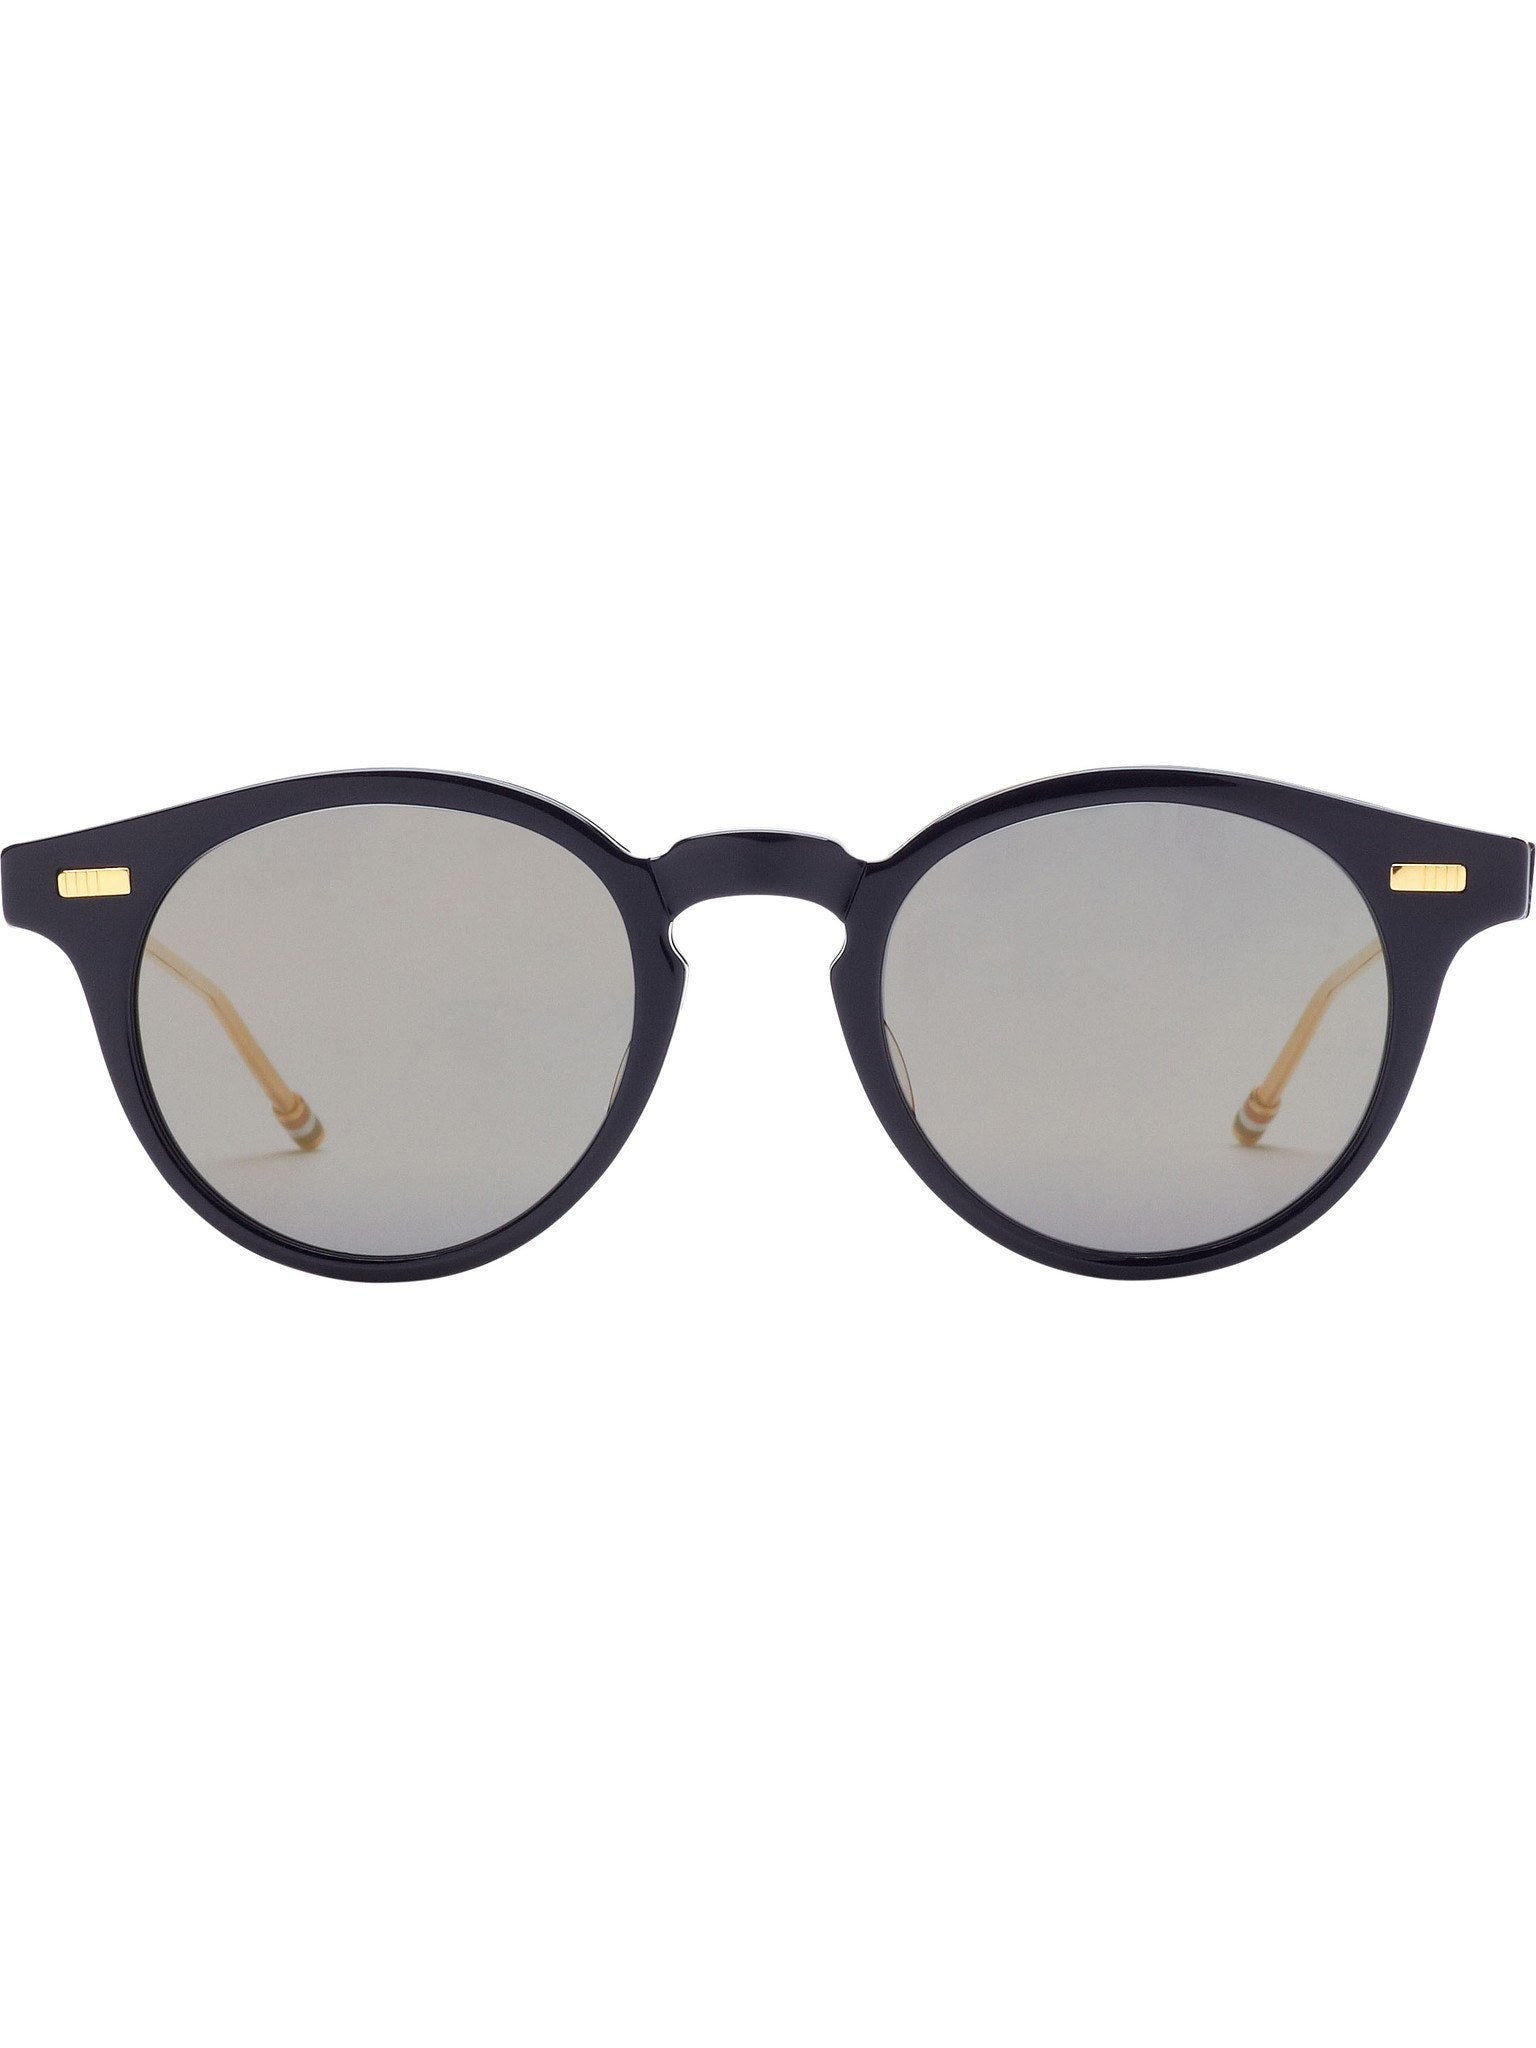 36b3f5344bf8 Sunglasses - Thom Browne TB-806-C Sunglasses